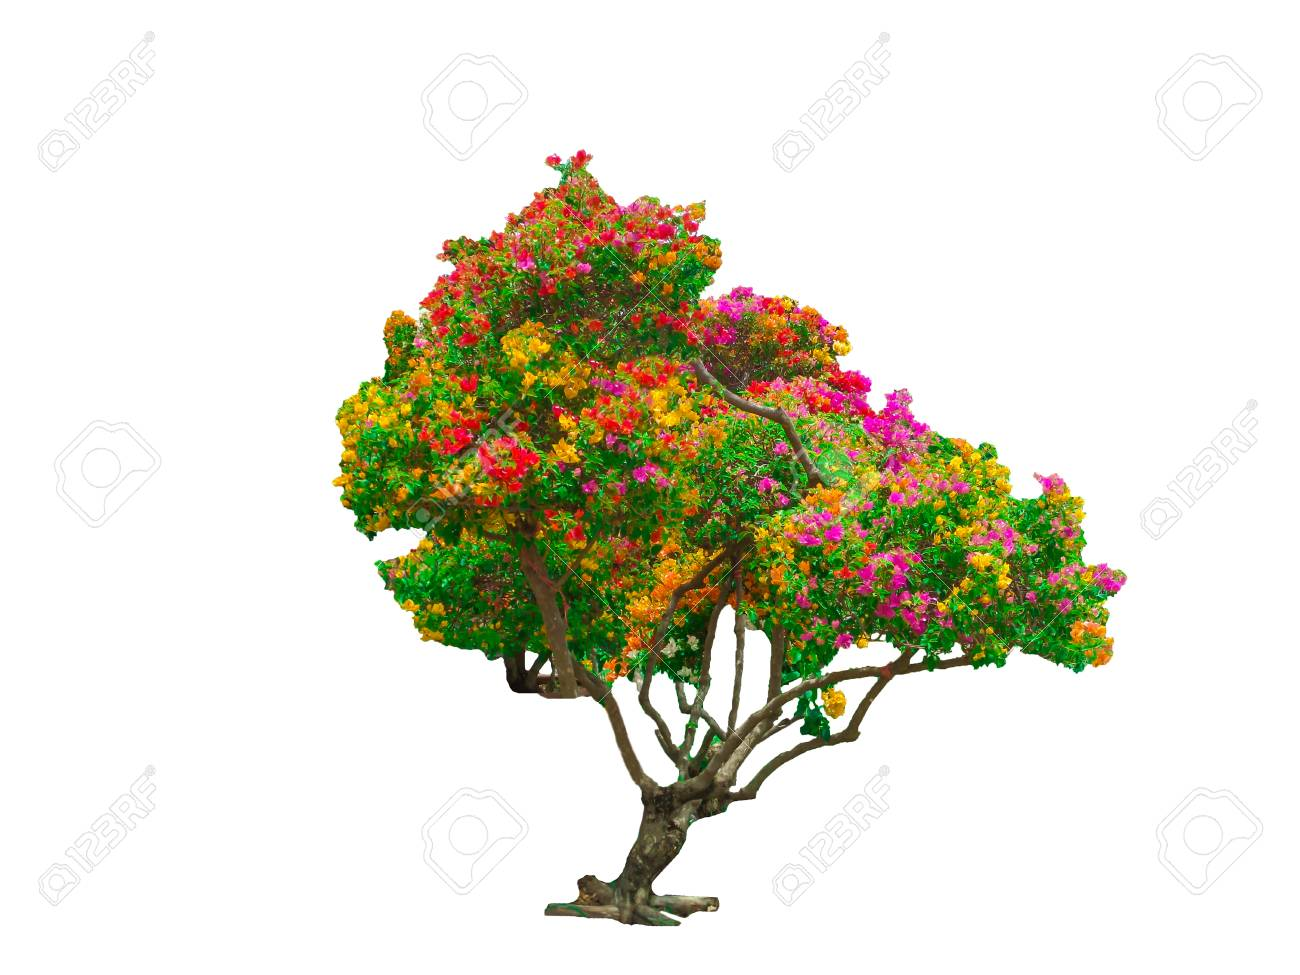 Bougainvillea Tree Rainbow Colorful Isolated Stock Photo, Picture ...